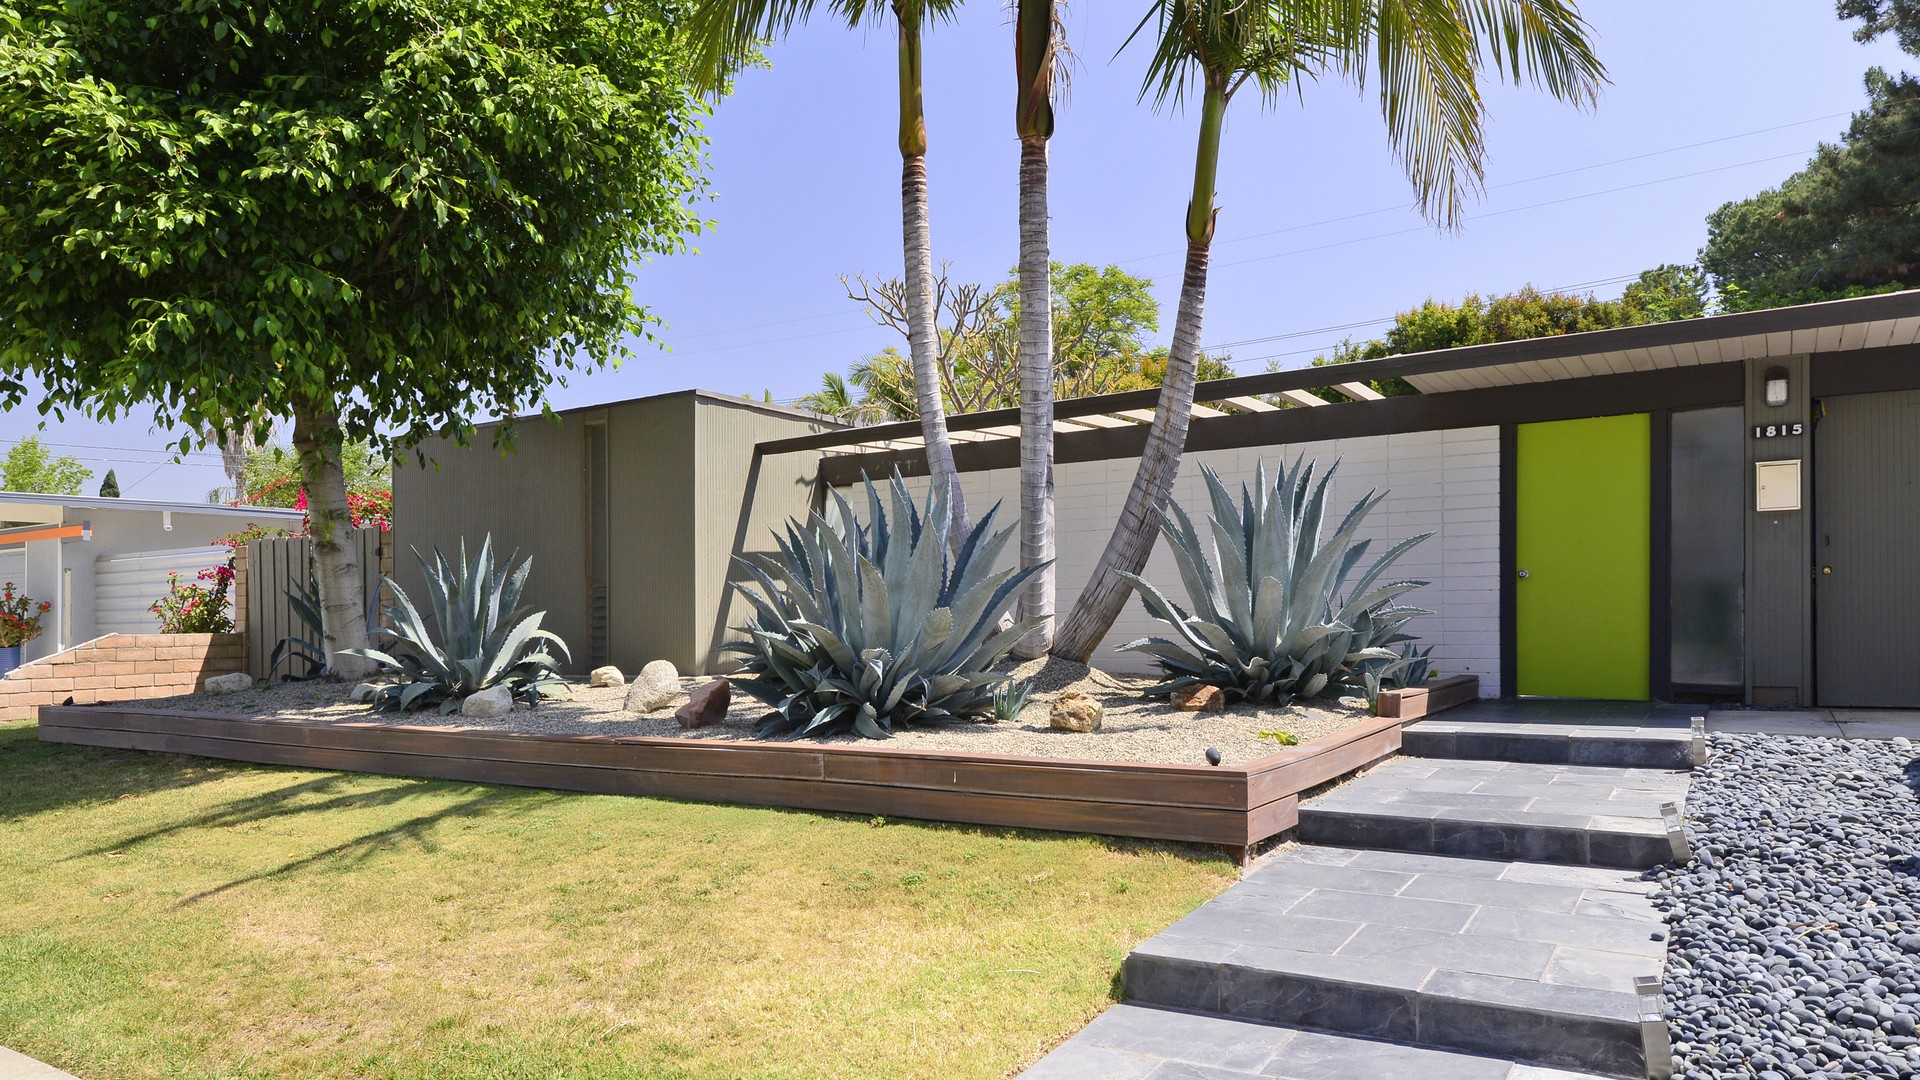 Orange ca eichler homes eichlers for sale in orange for Tract landscape architects